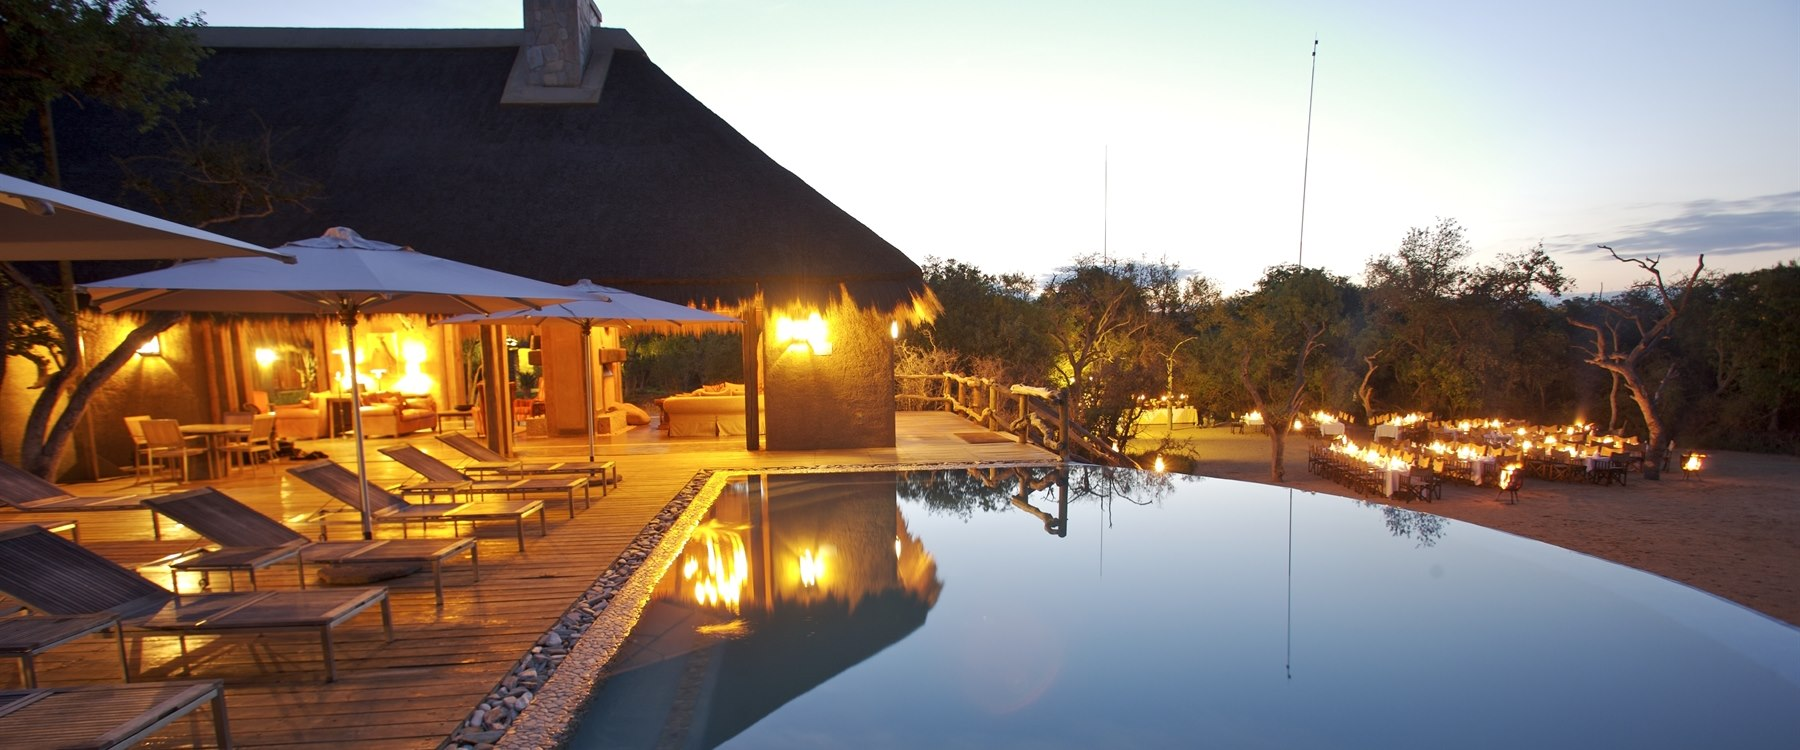 Pool area at Kapama River Lodge, South Africa